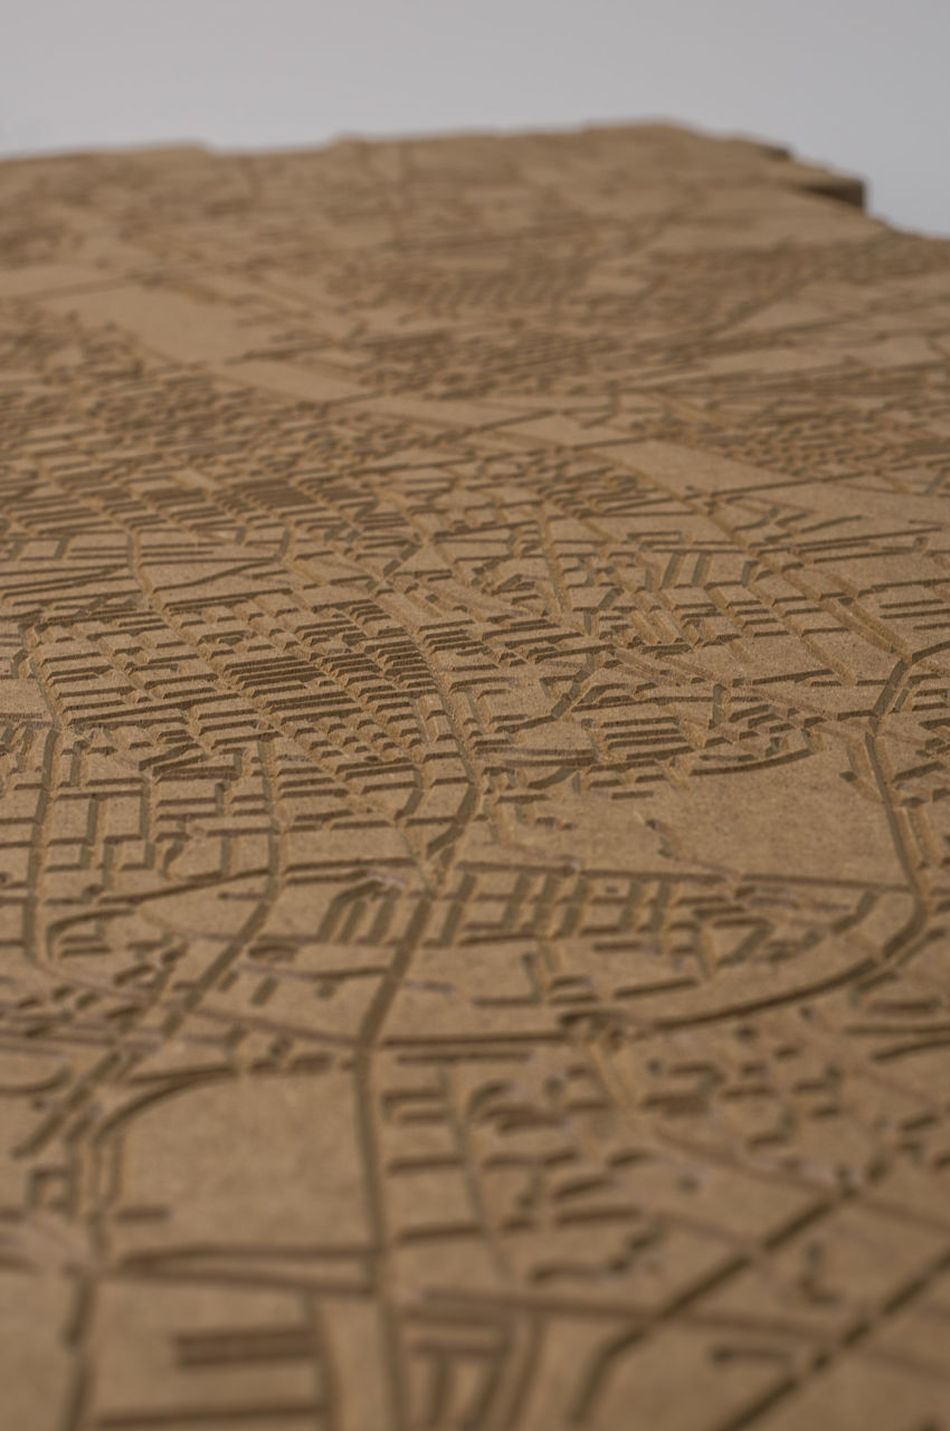 Day 62. The map, the diy. 365 365 Day Challenge 365project Close-up Cnc DIY History Indoors  Map Roads Selective Focus Warsaw Warsaw Poland